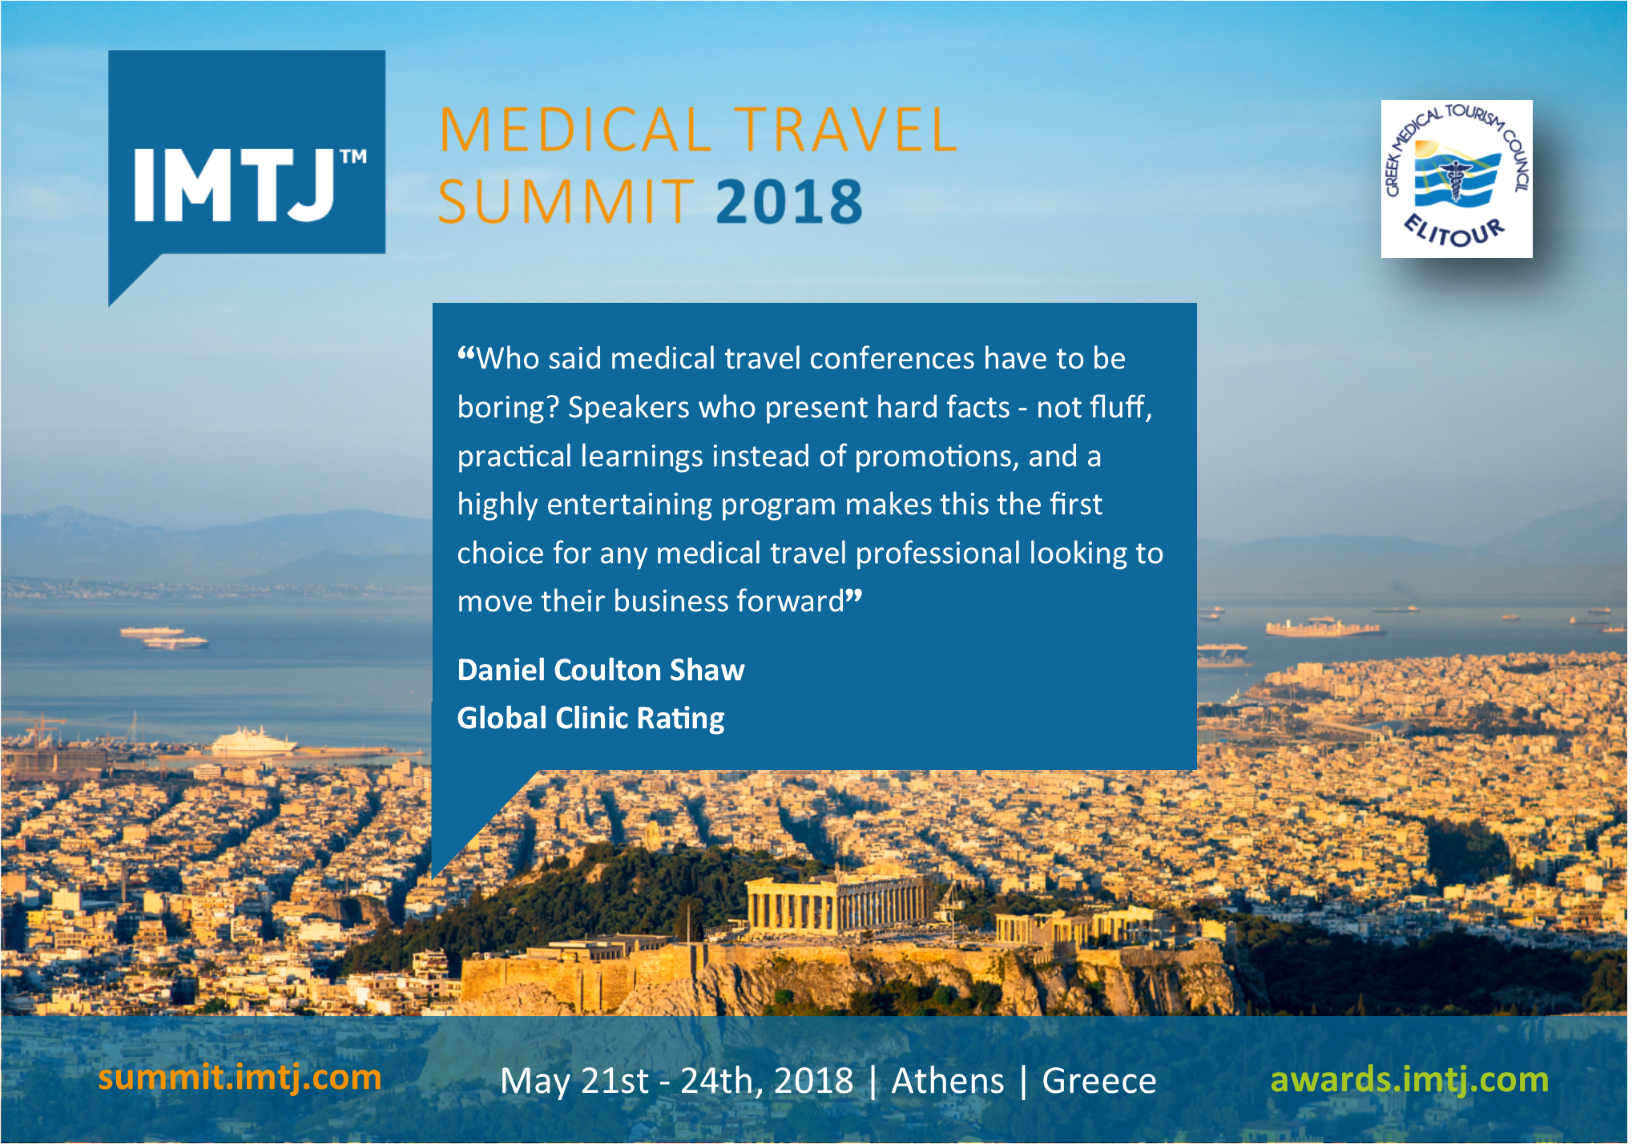 IMTJ Medical Travel Summit: reasons to attend